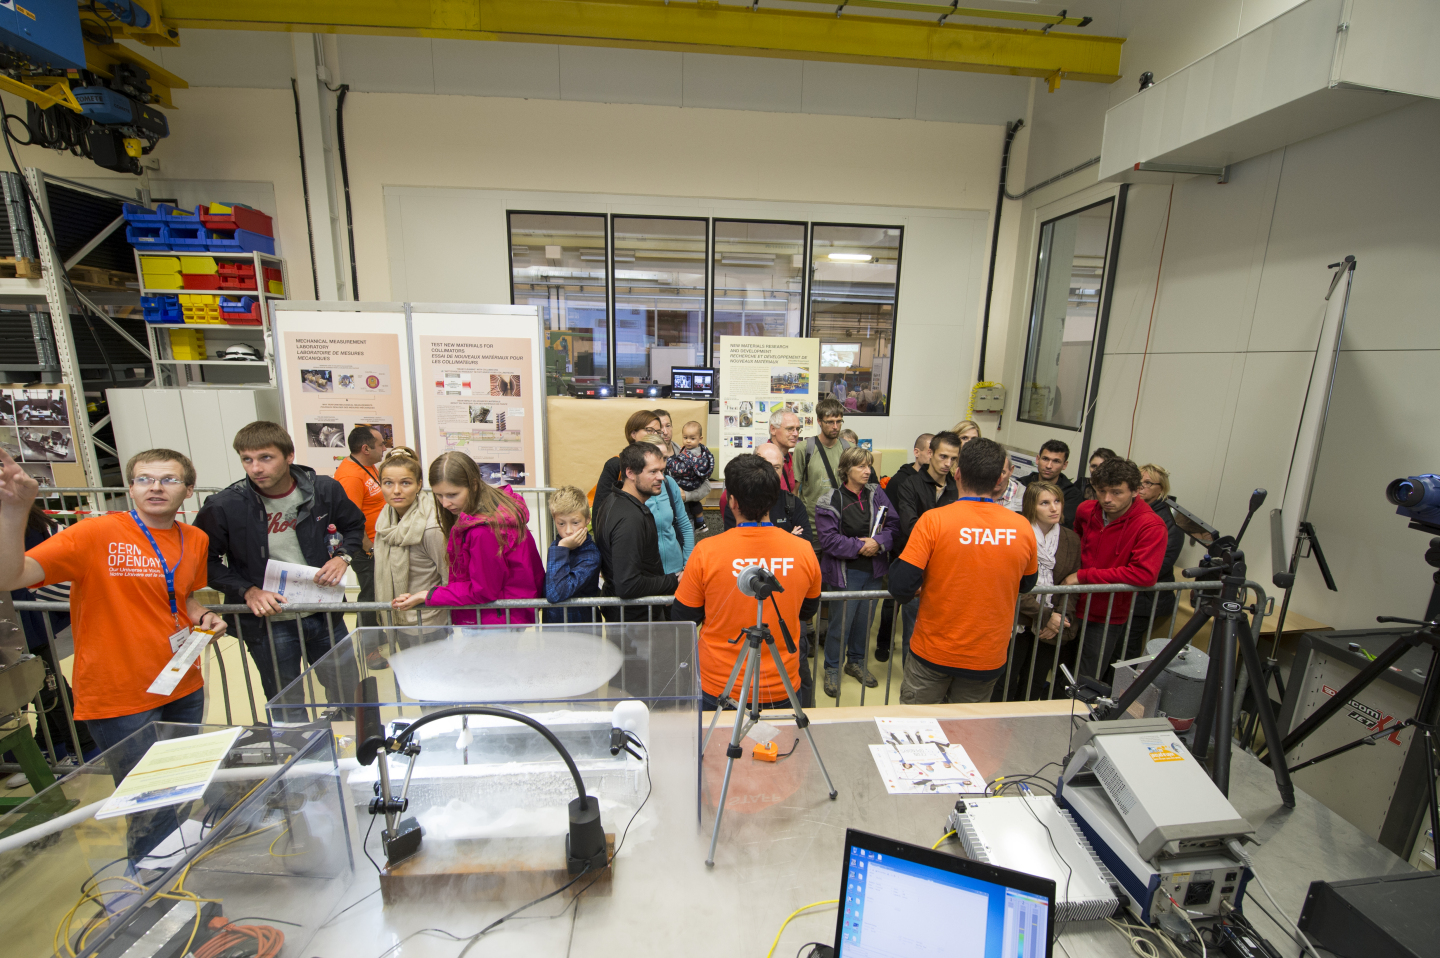 CERN Open Days 2013, Meyrin Campus, ZONE B